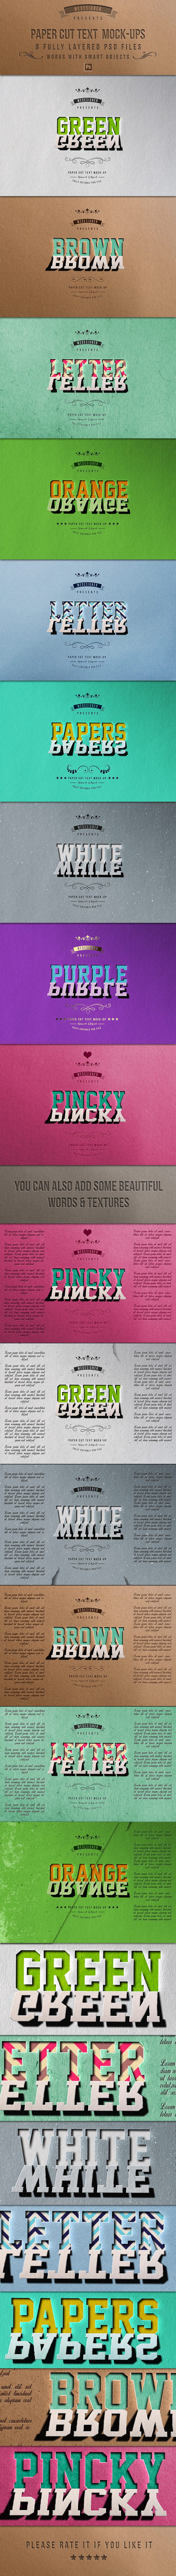 Paper Cut Text Mock-Ups - Text Effects Actions